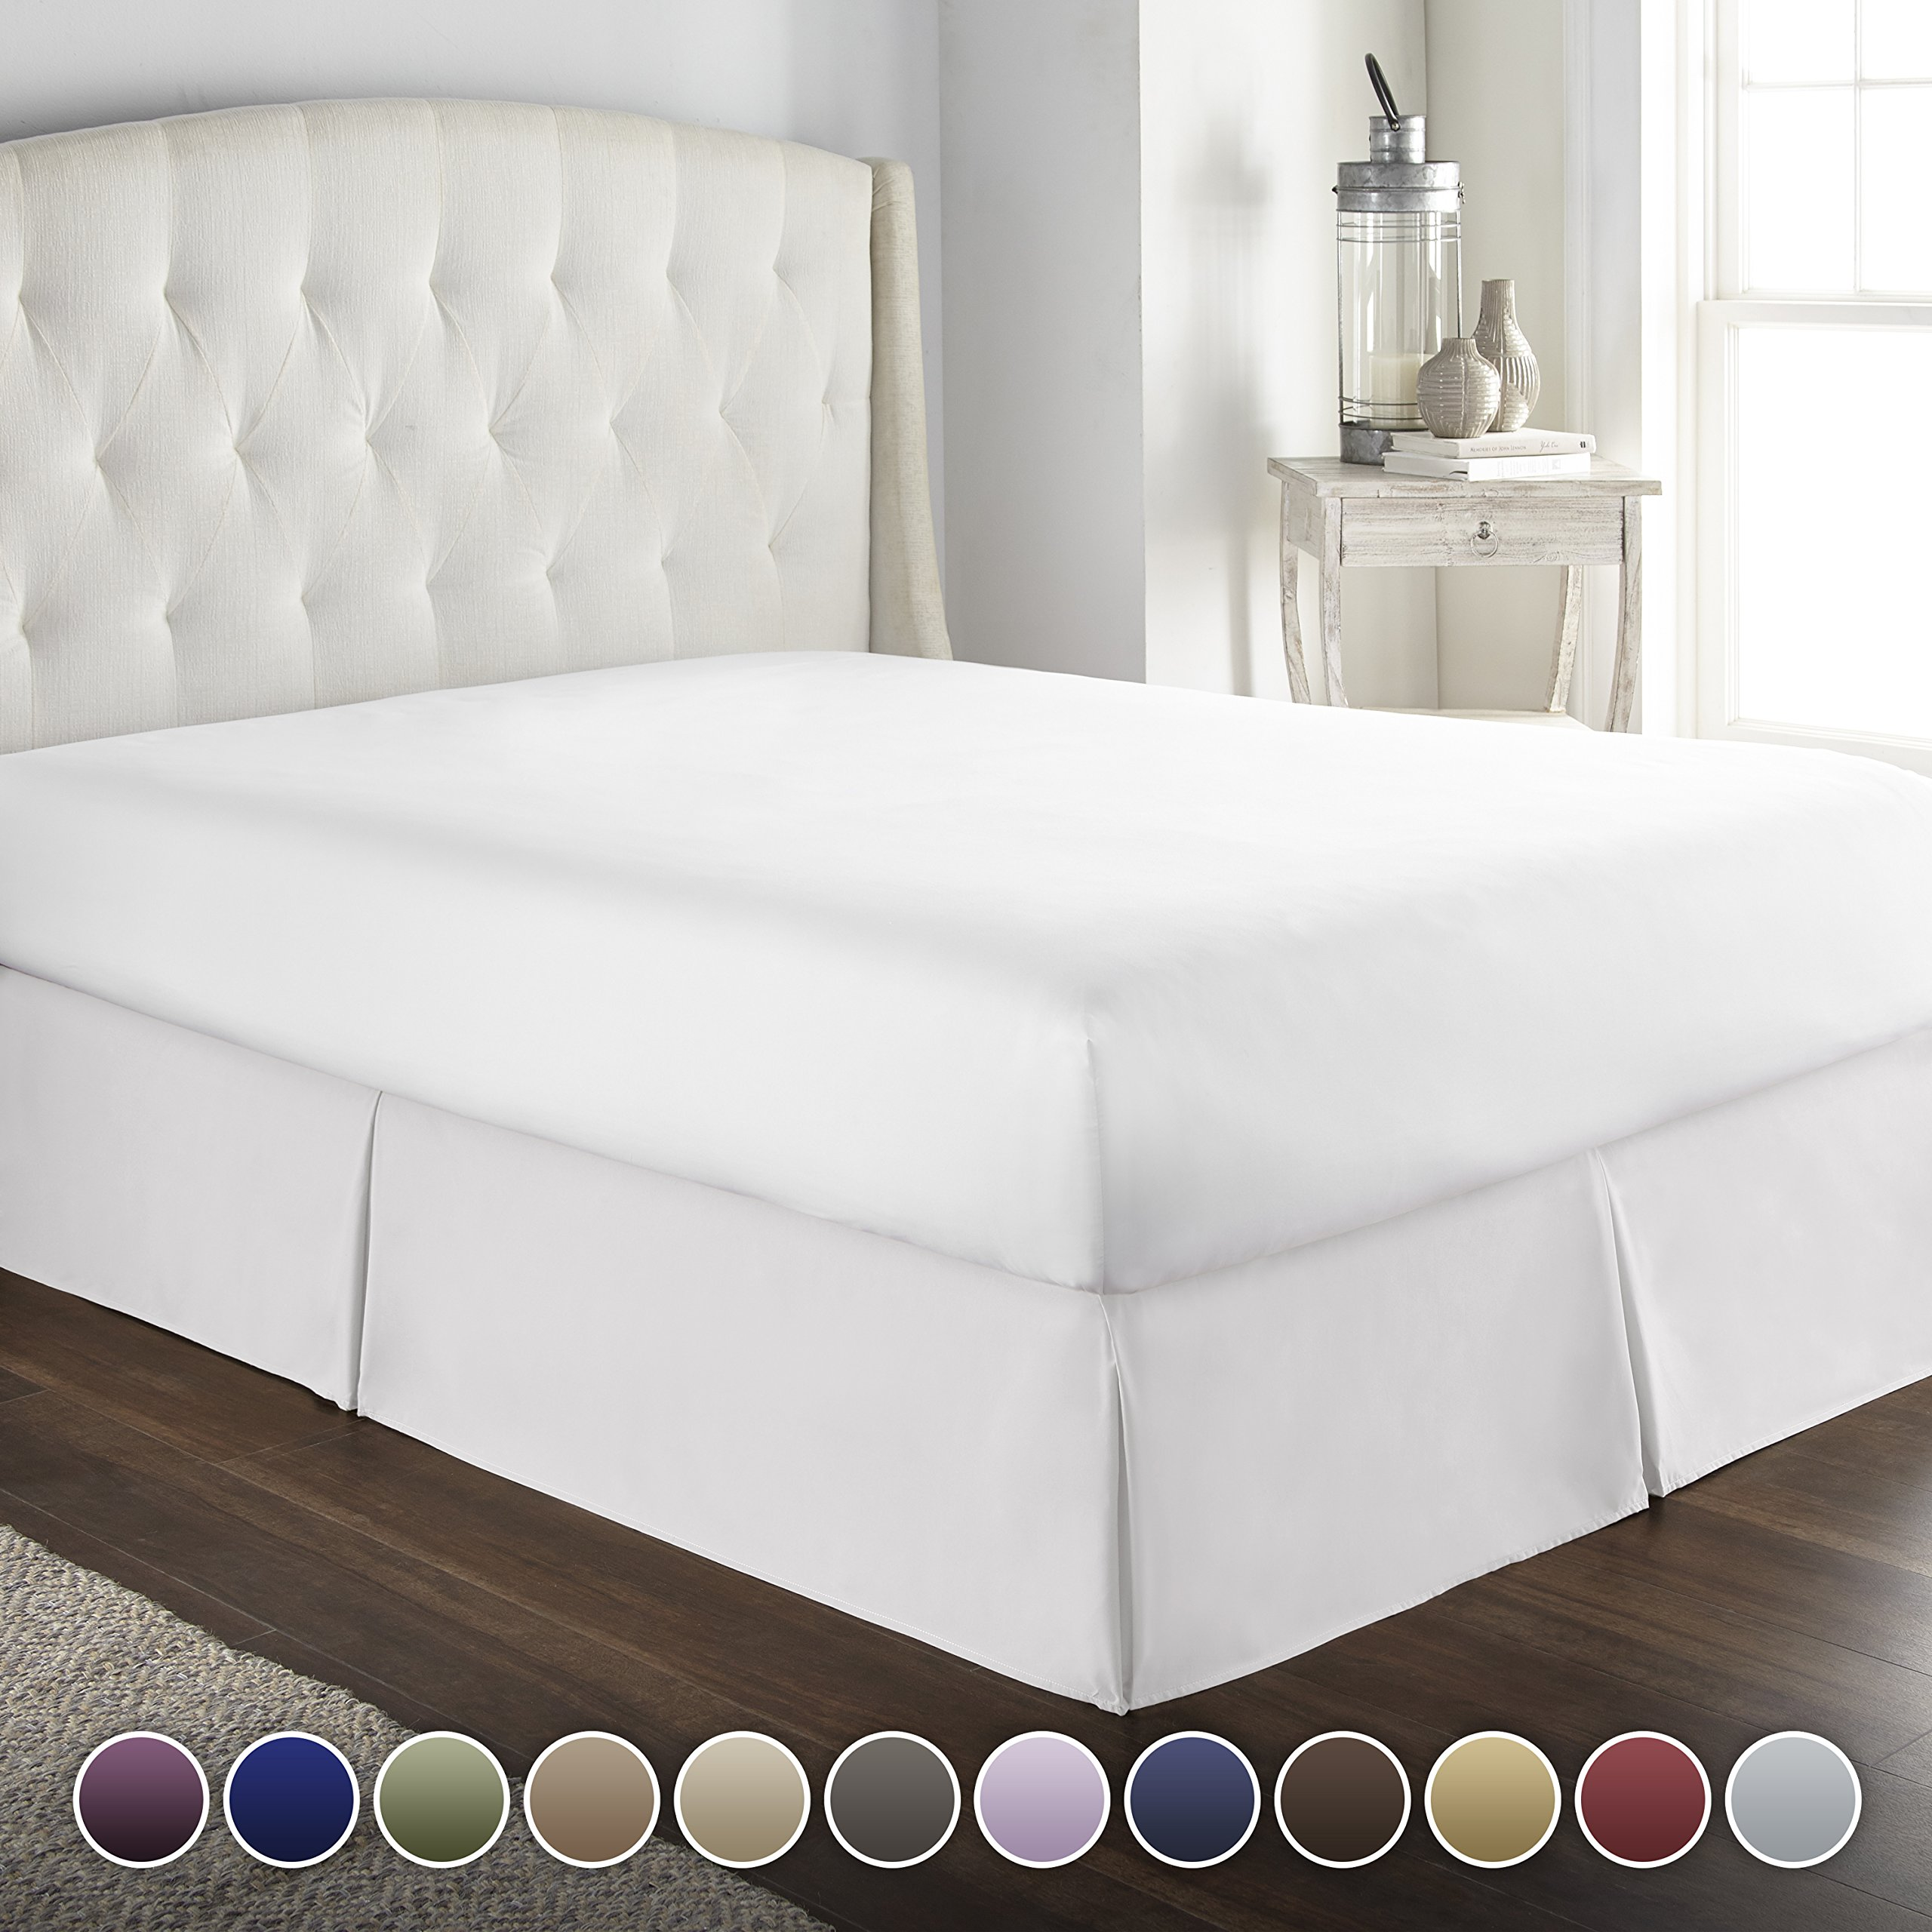 HC COLLECTION Hotel Luxury Bed Skirt/Dust Ruffle 1800 Platinum Collection-14 inch Tailored Drop, Wrinkle & Fade Resistant, Linens (Queen, White)